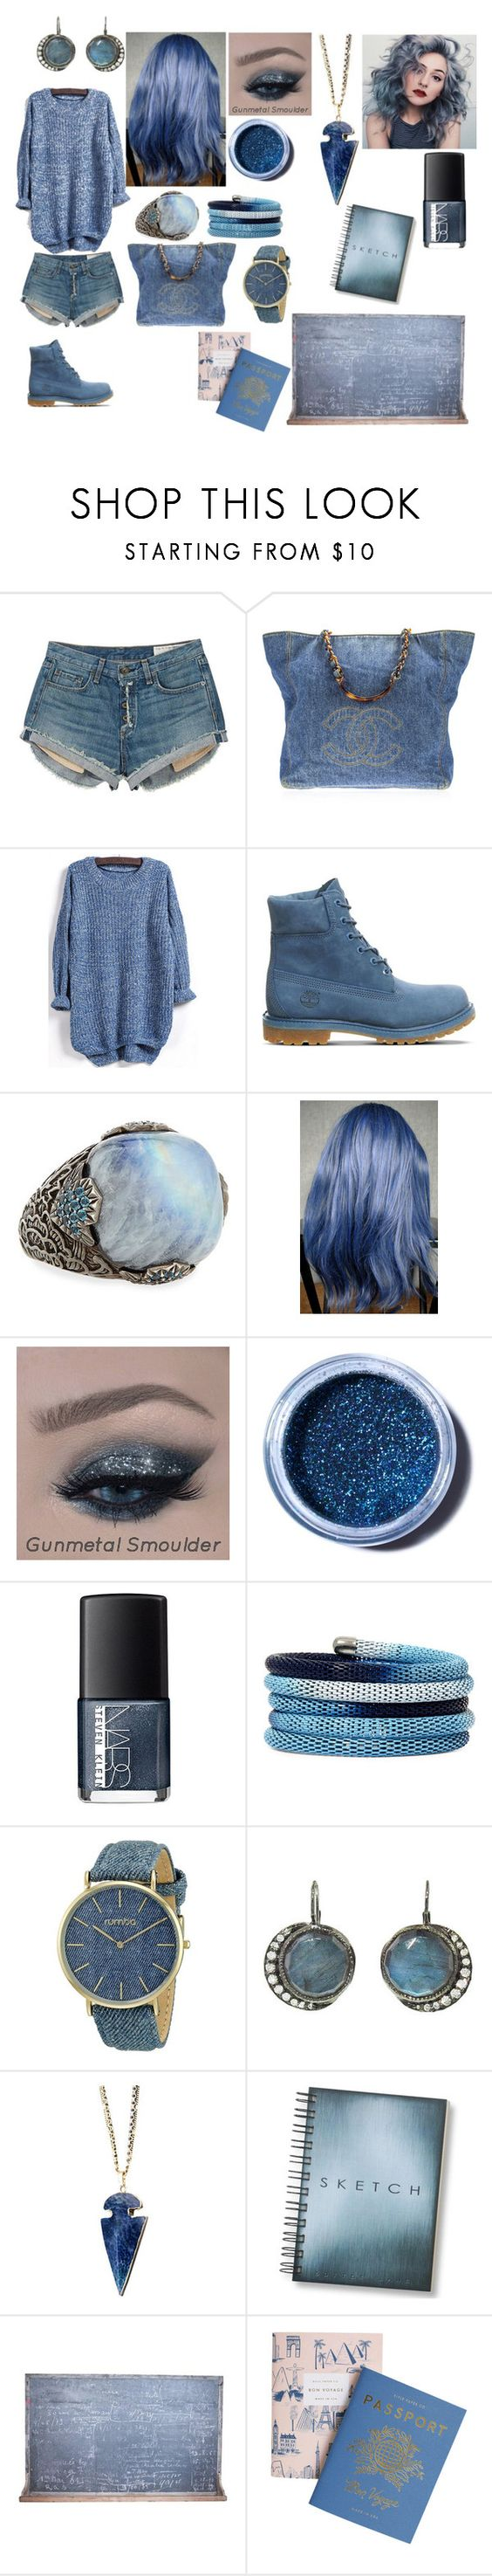 """""""Untitled #605"""" by thestyle-chic ❤ liked on Polyvore featuring rag & bone, Chanel, Timberland, Stephen Dweck, Lime Crime, NARS Cosmetics, Nicole By Nicole Miller and RumbaTime"""